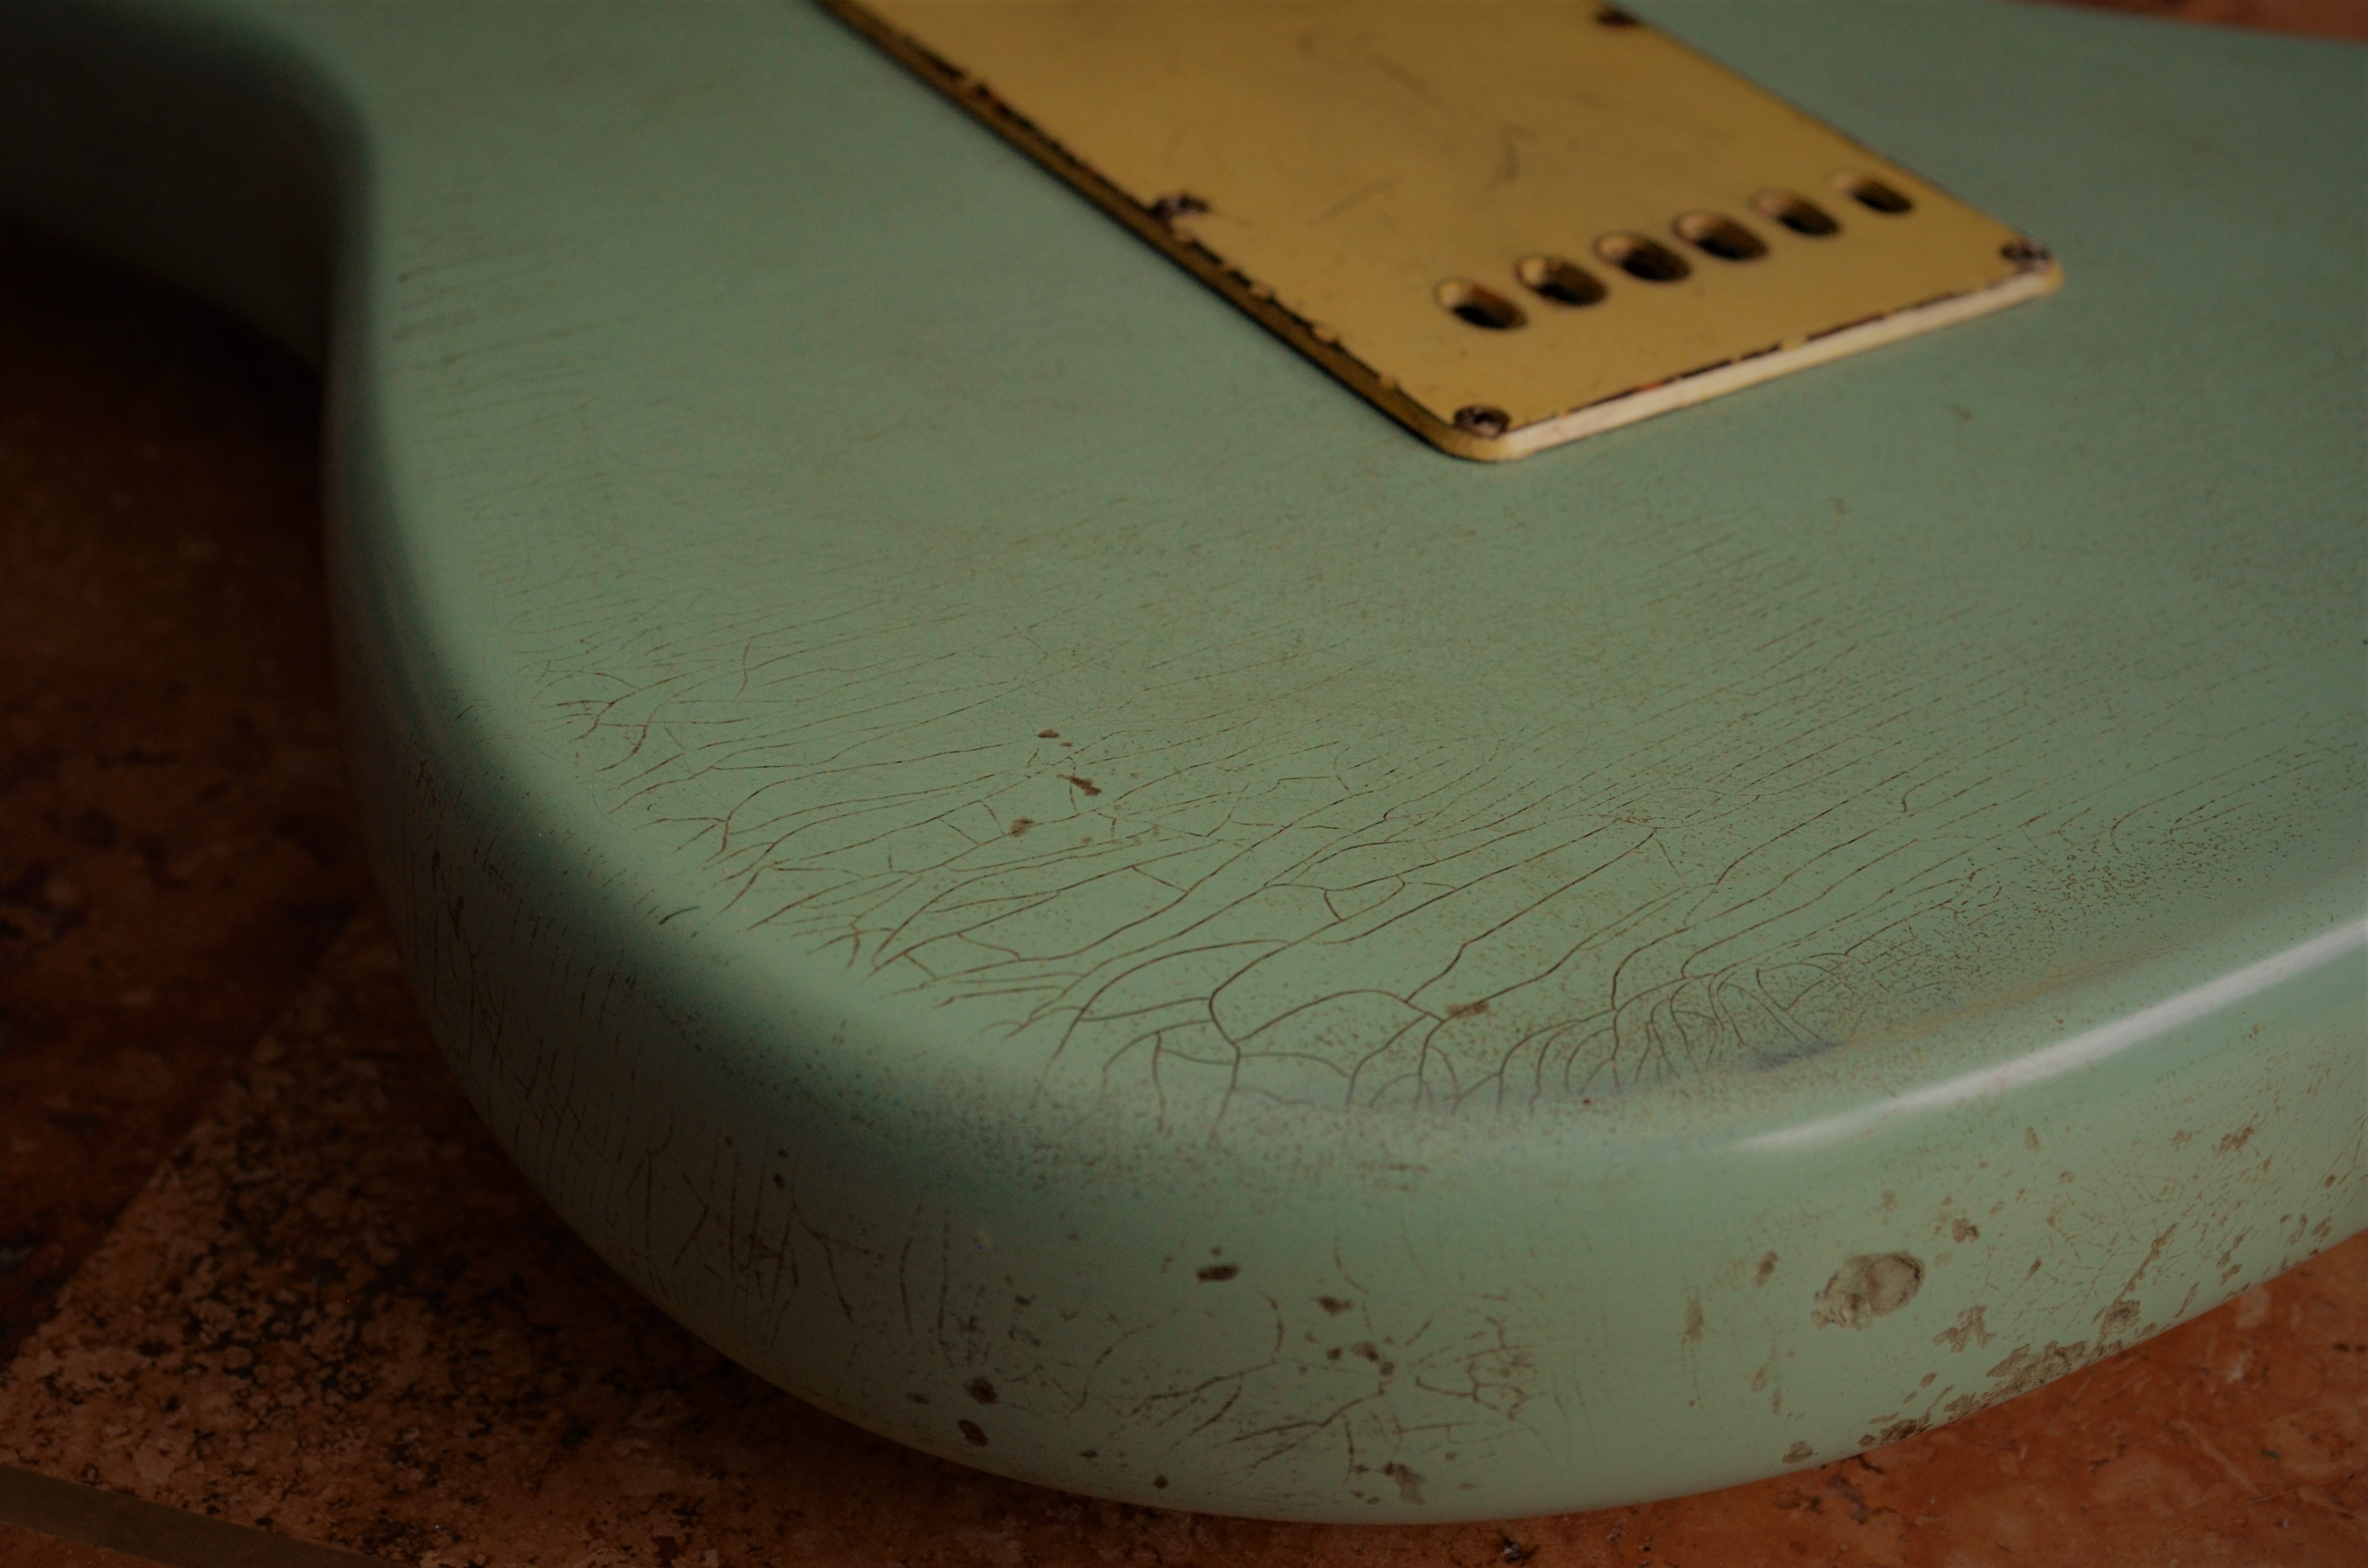 Fender Stratocaster Relic Trem Cover Finish Checking Surf Green Guitarwacky.com